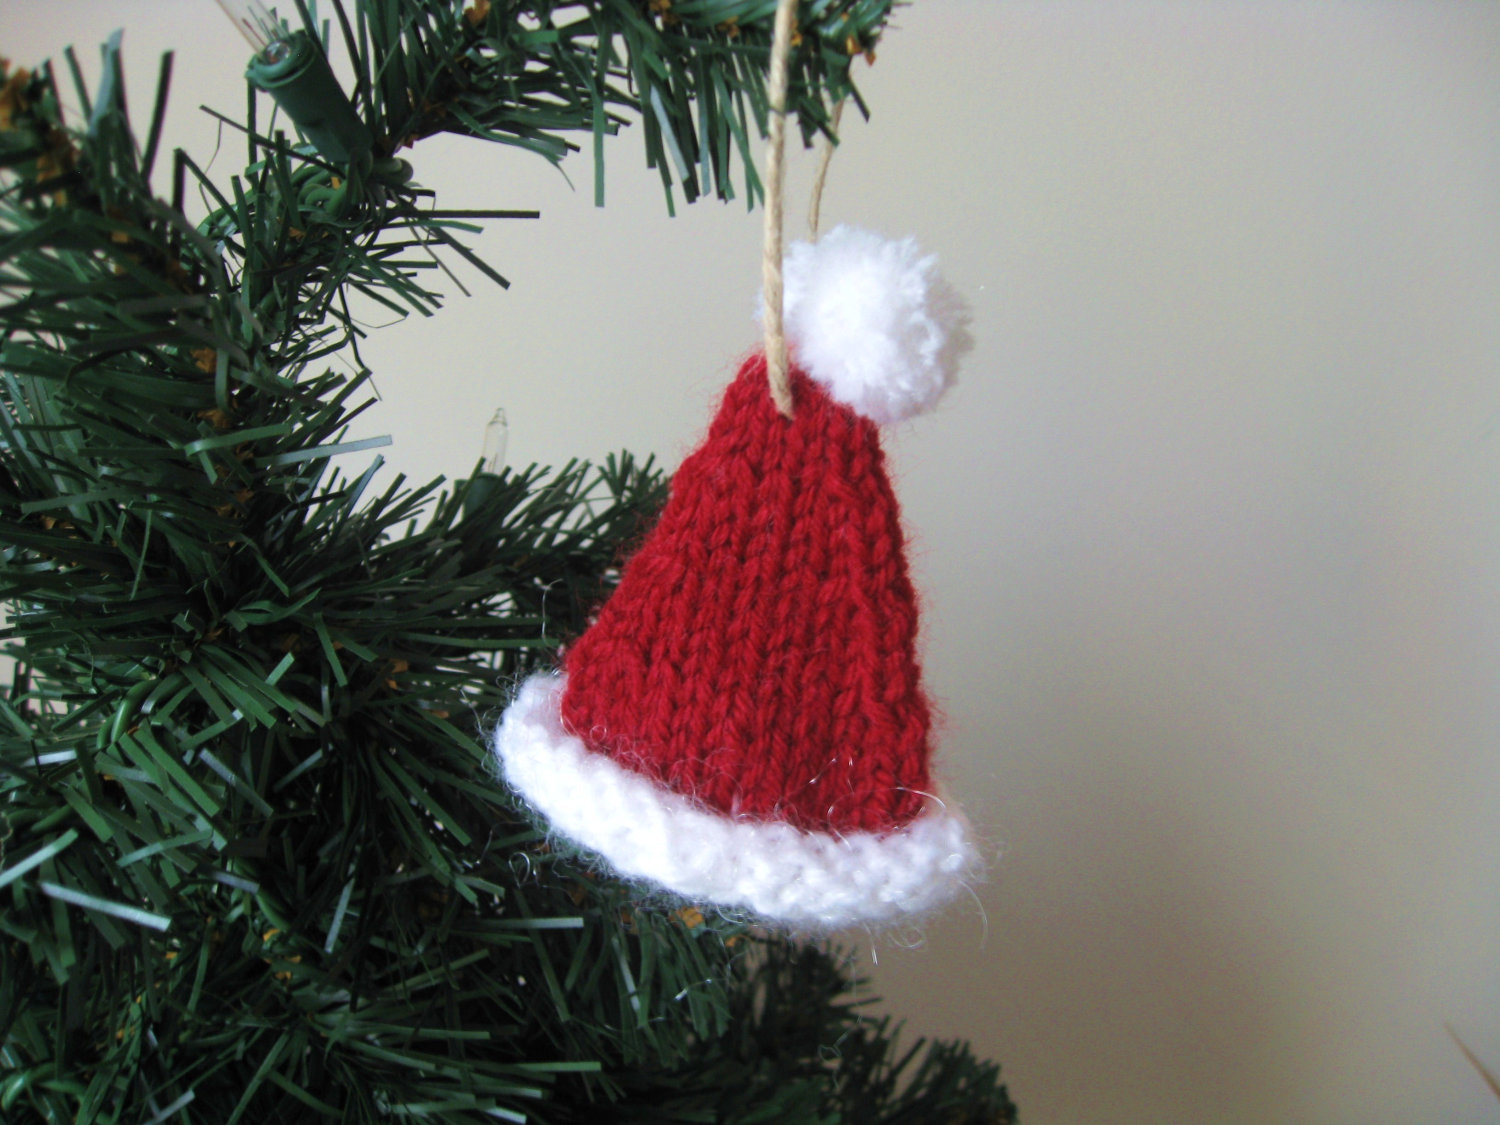 Simple Knitting Patterns Christmas Decorations : Family Crafts and Recipes: Knitted Christmas Ornaments- Free Pattern Included